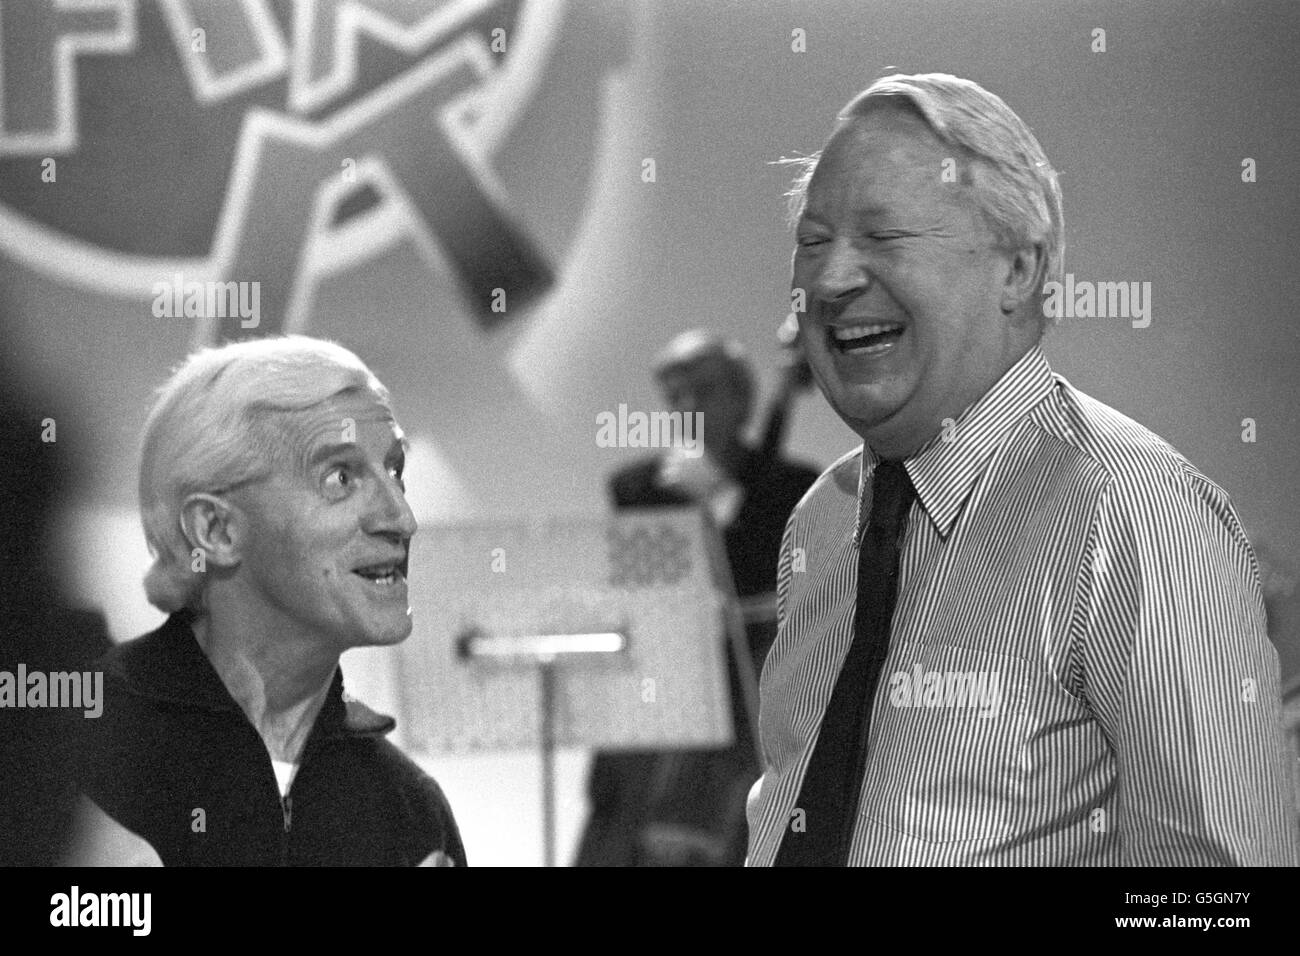 Television - Jim'll Fix It - Edward Heath - BBC Shepherd's Bush Theatre, London Stock Photo